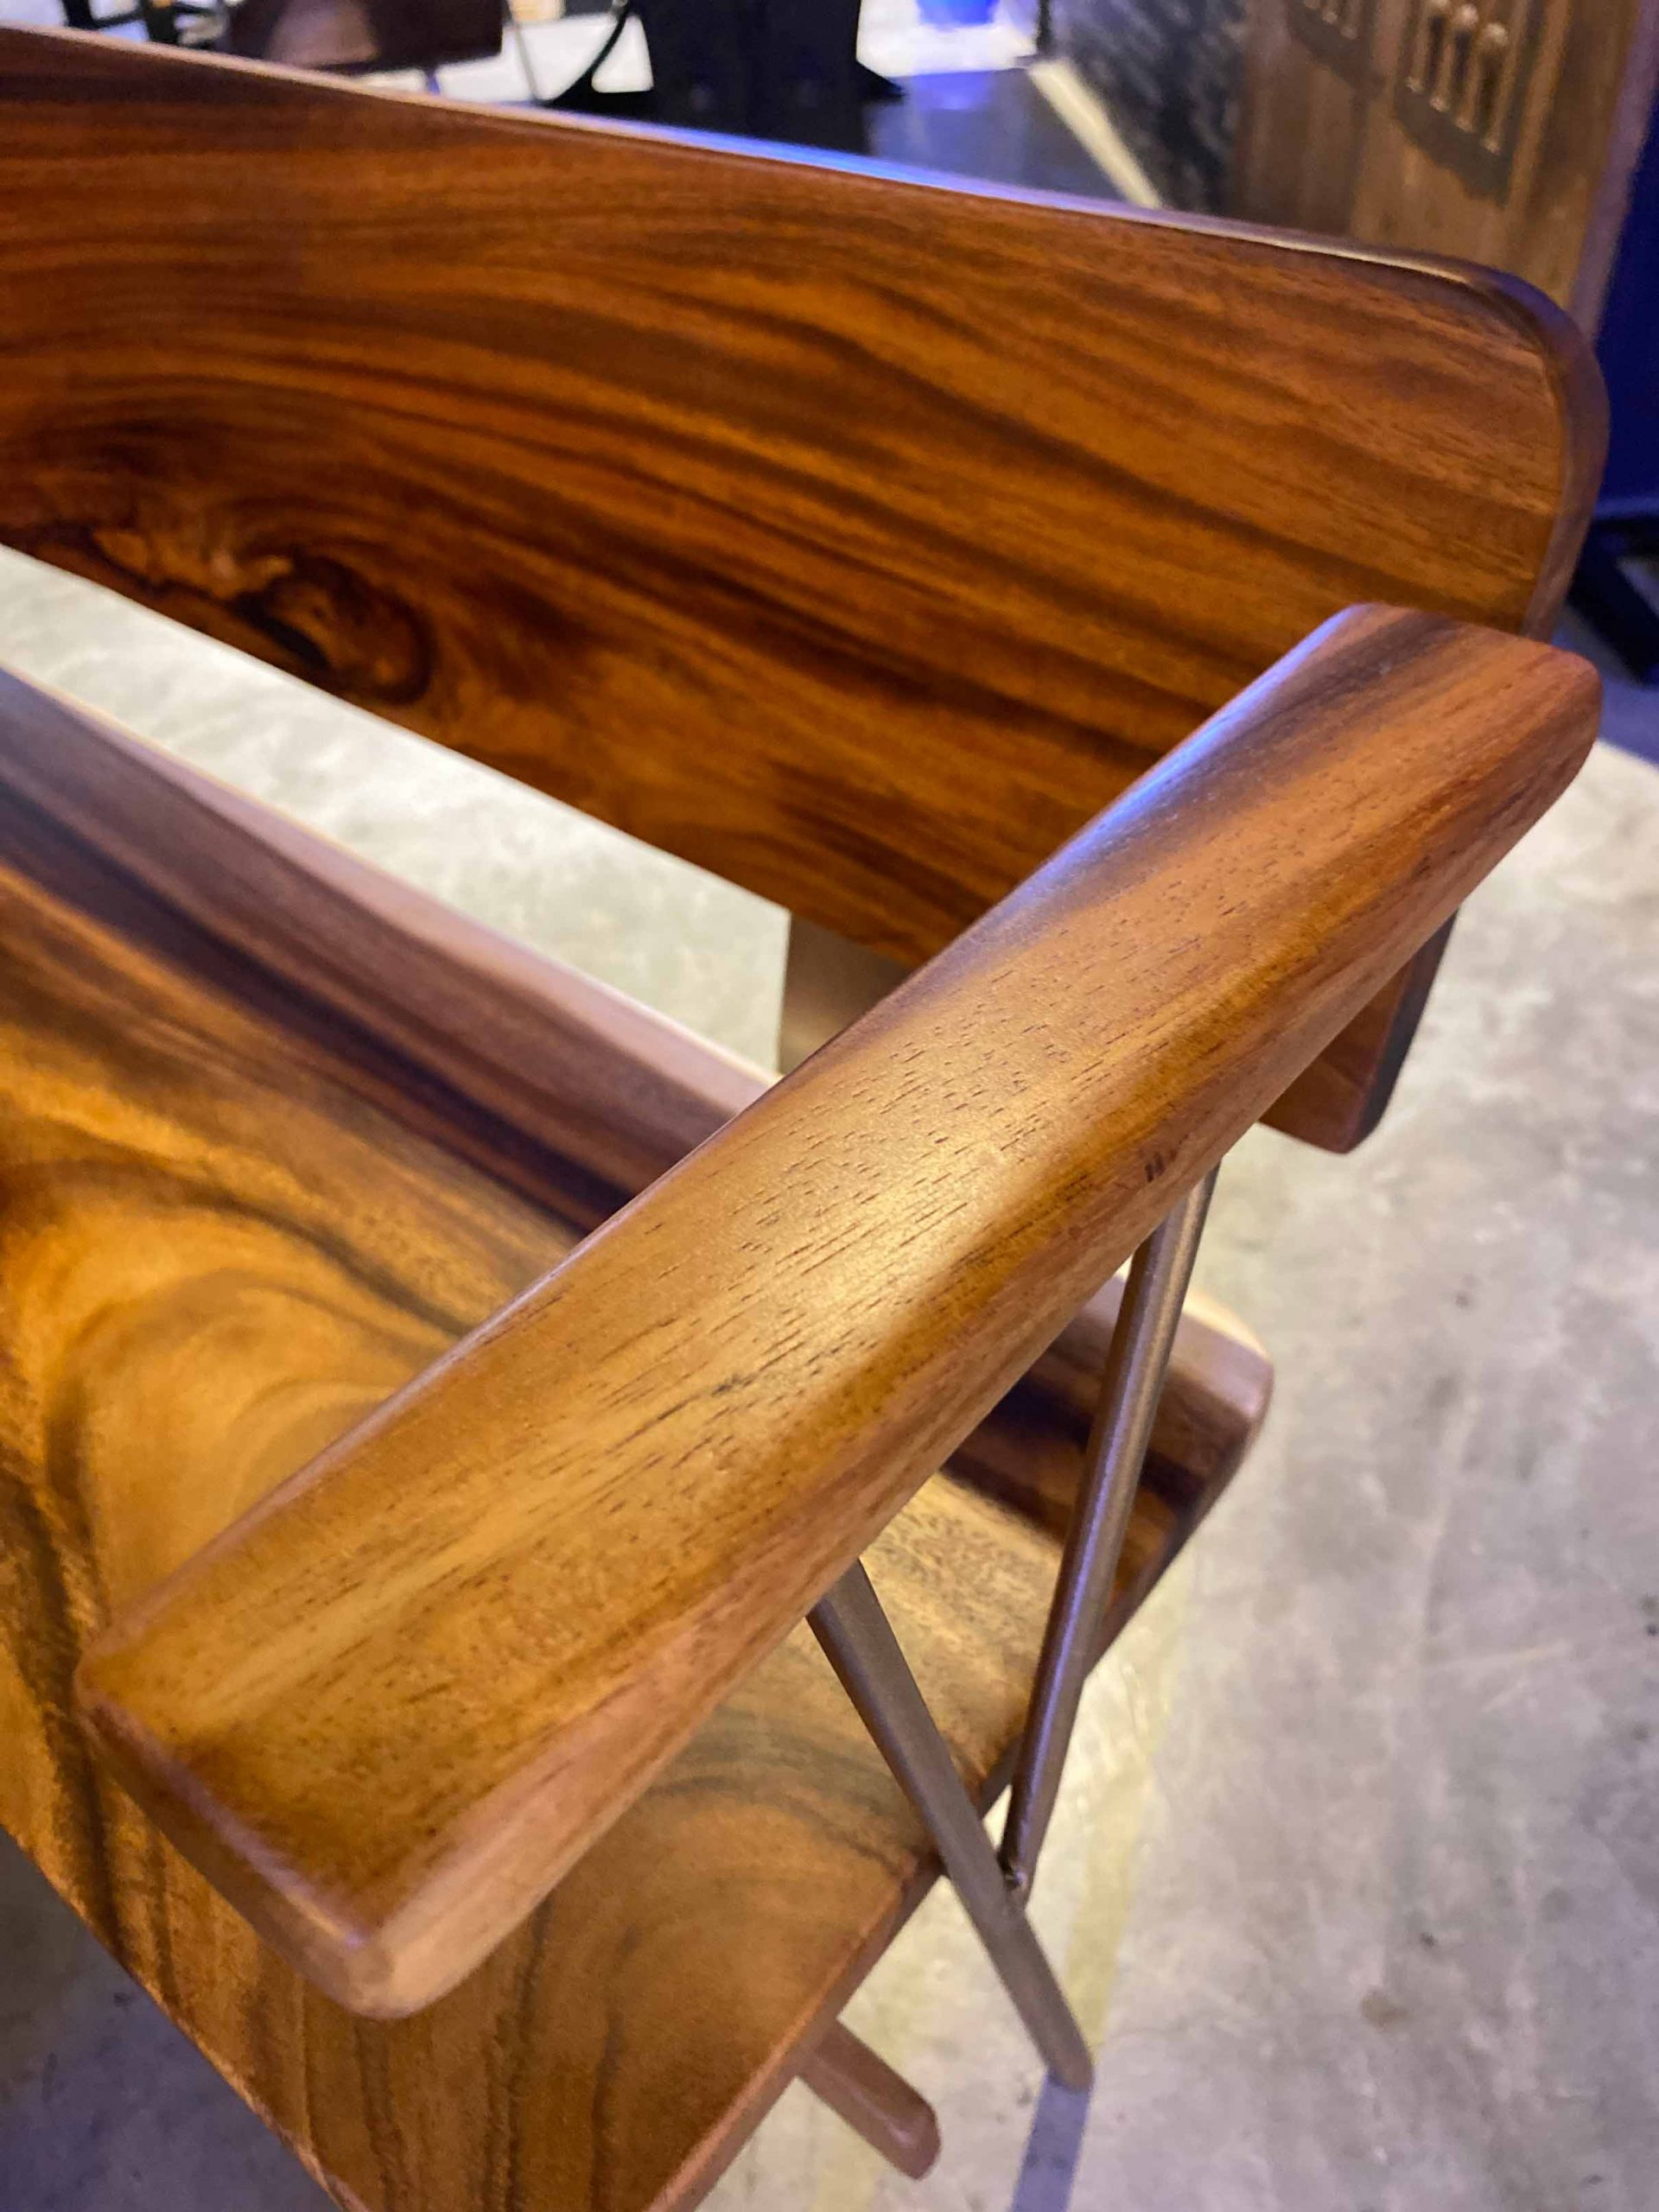 Furniture made of sustainable wood